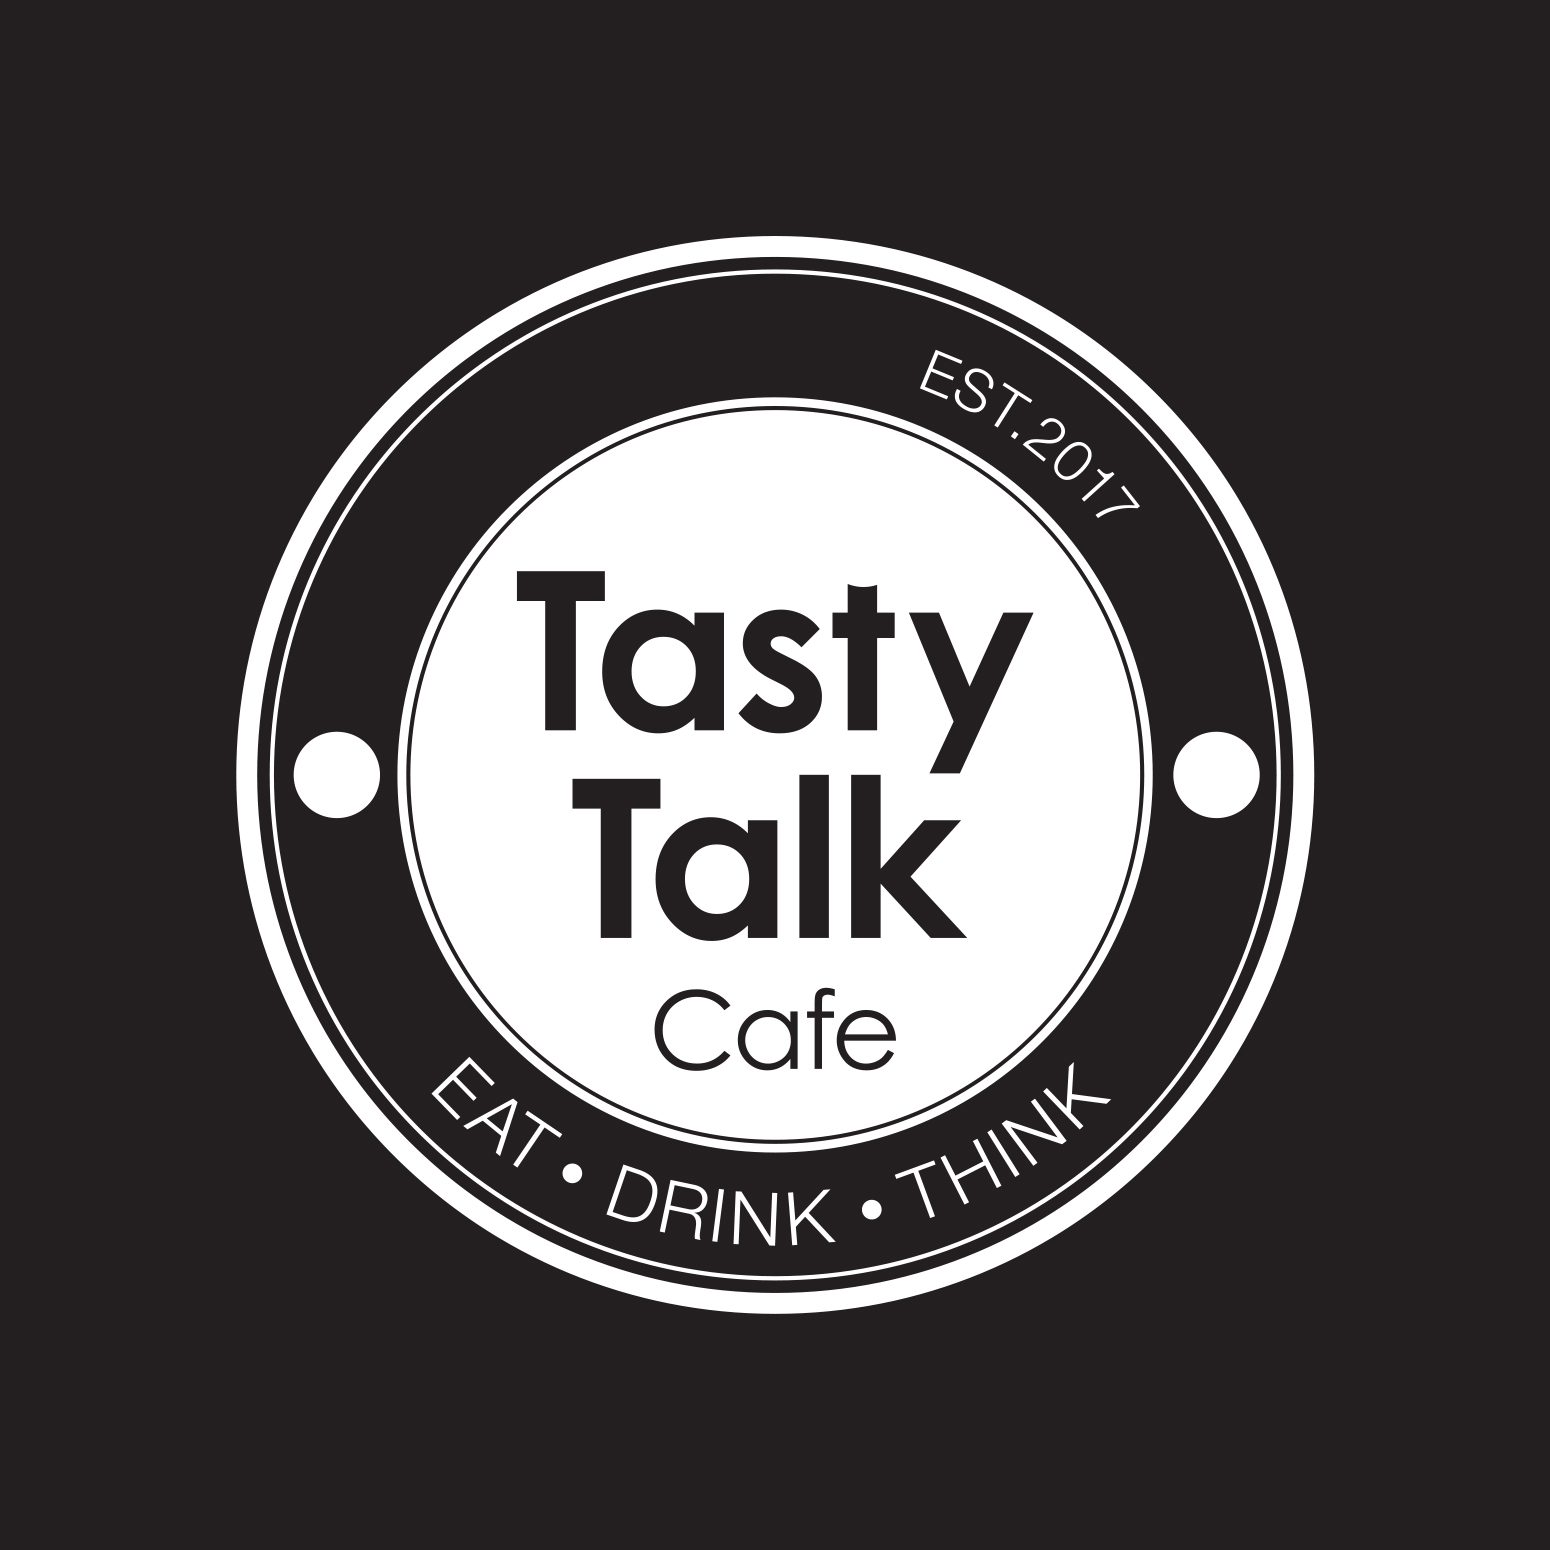 Tasty Talk Cafe